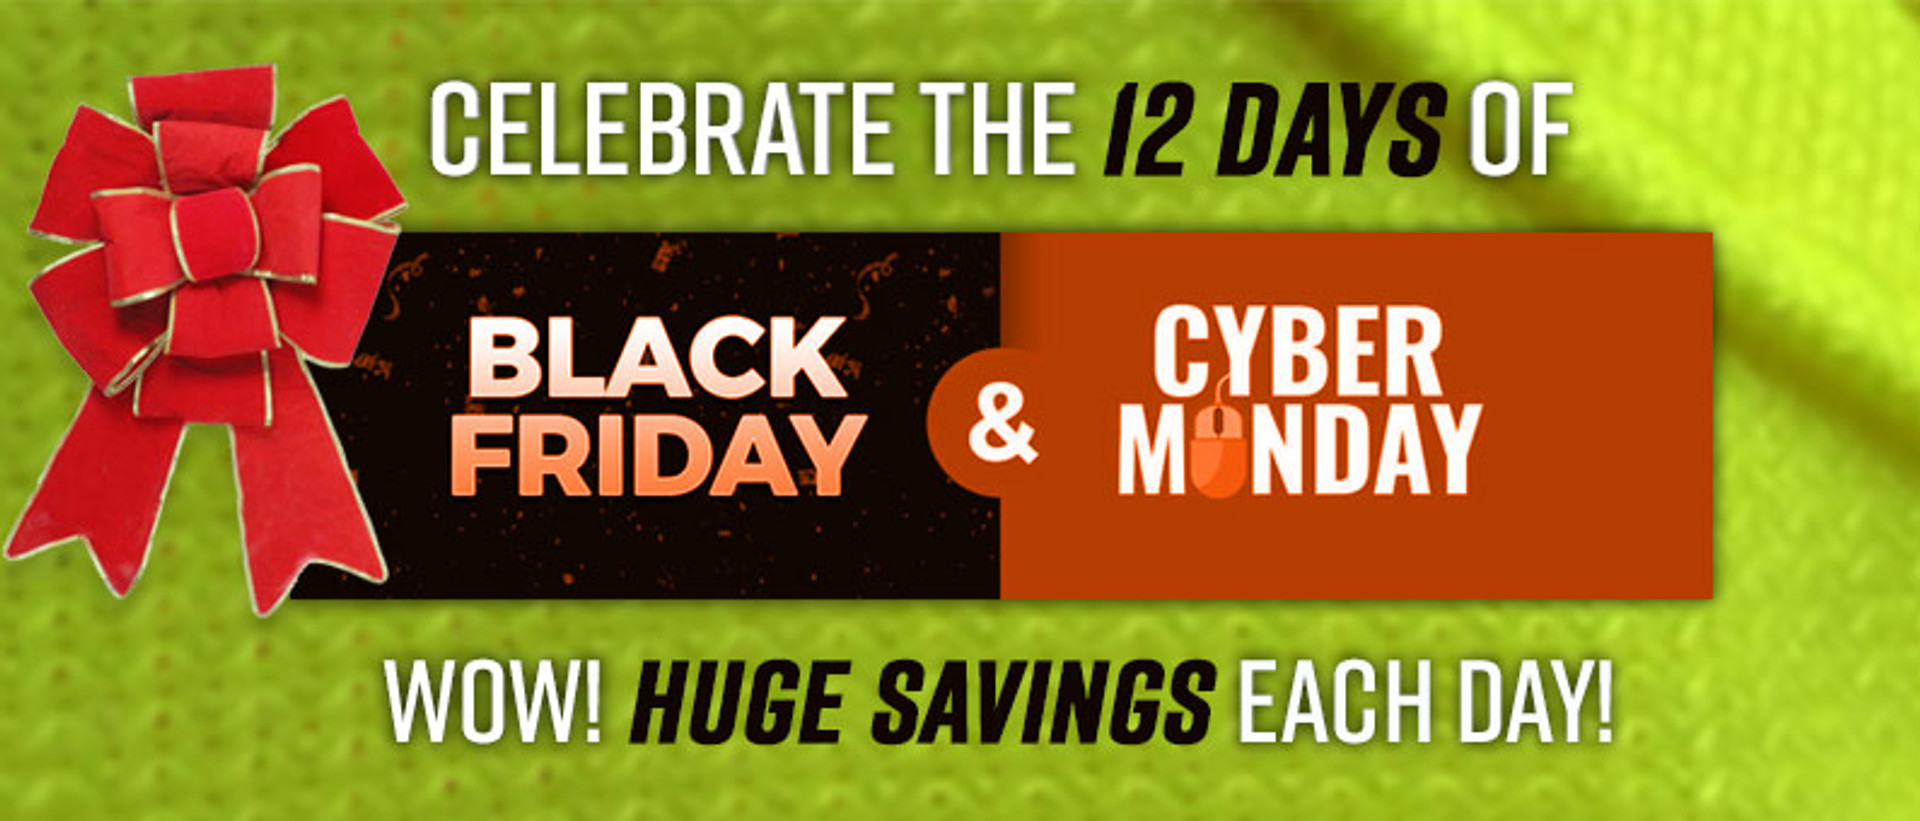 Black Friday - Cyber Monday Sales Event